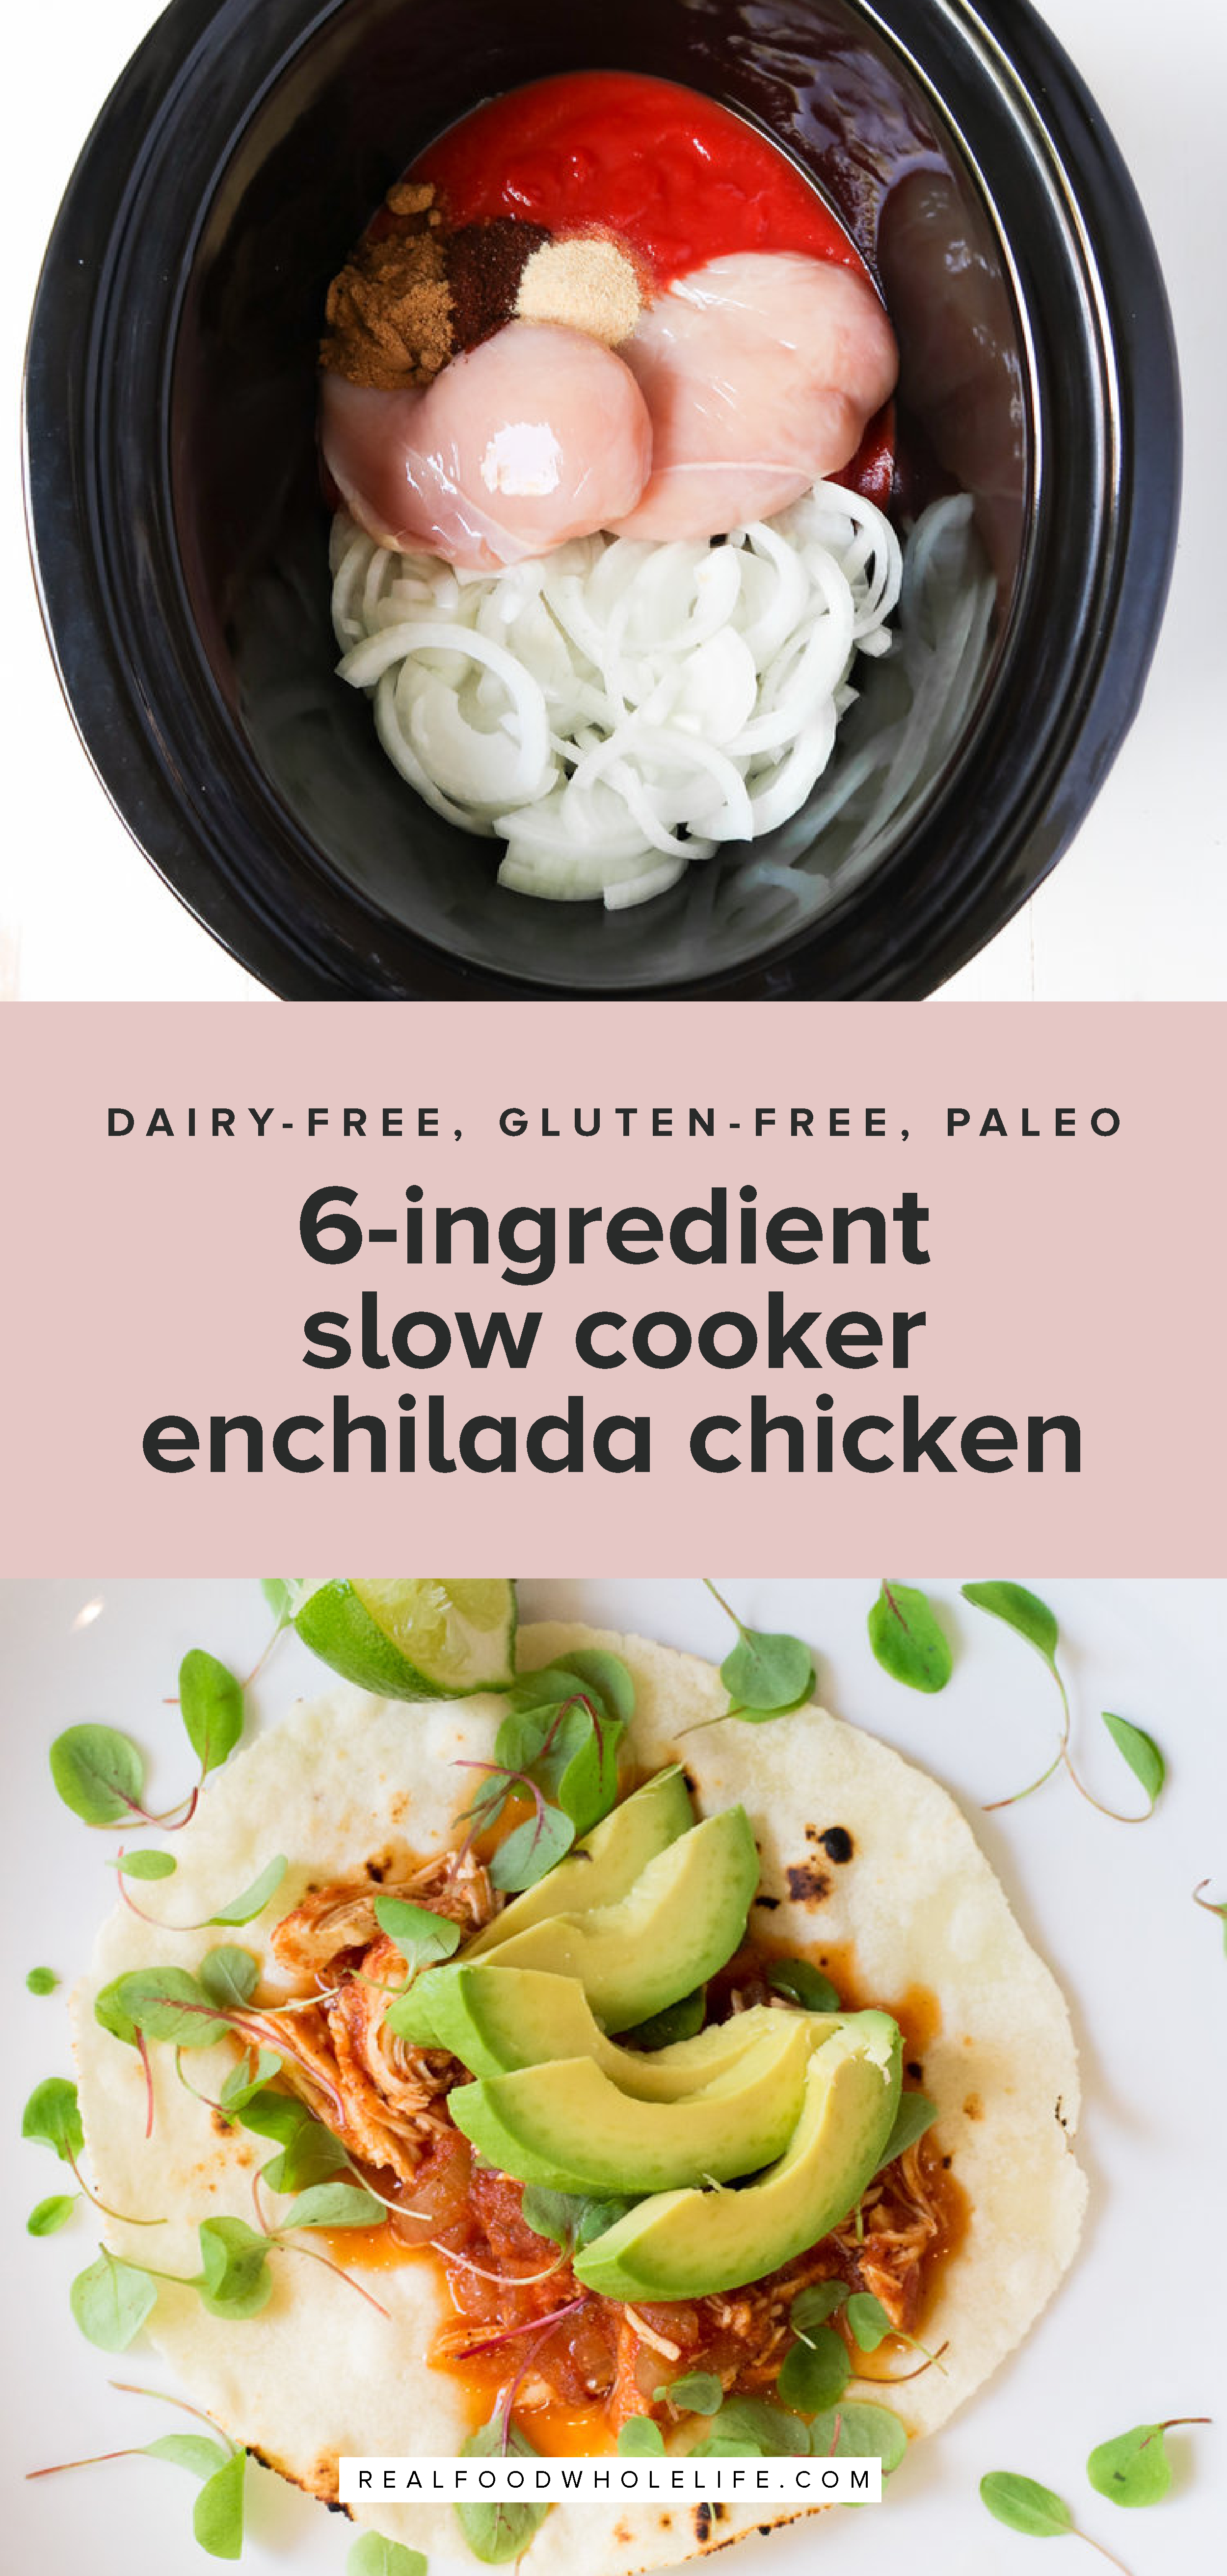 6-Ingredient Slow Cooker Enchilada Chicken is a totally simple, completely delicious weeknight crockpot recipe that everyone will love!